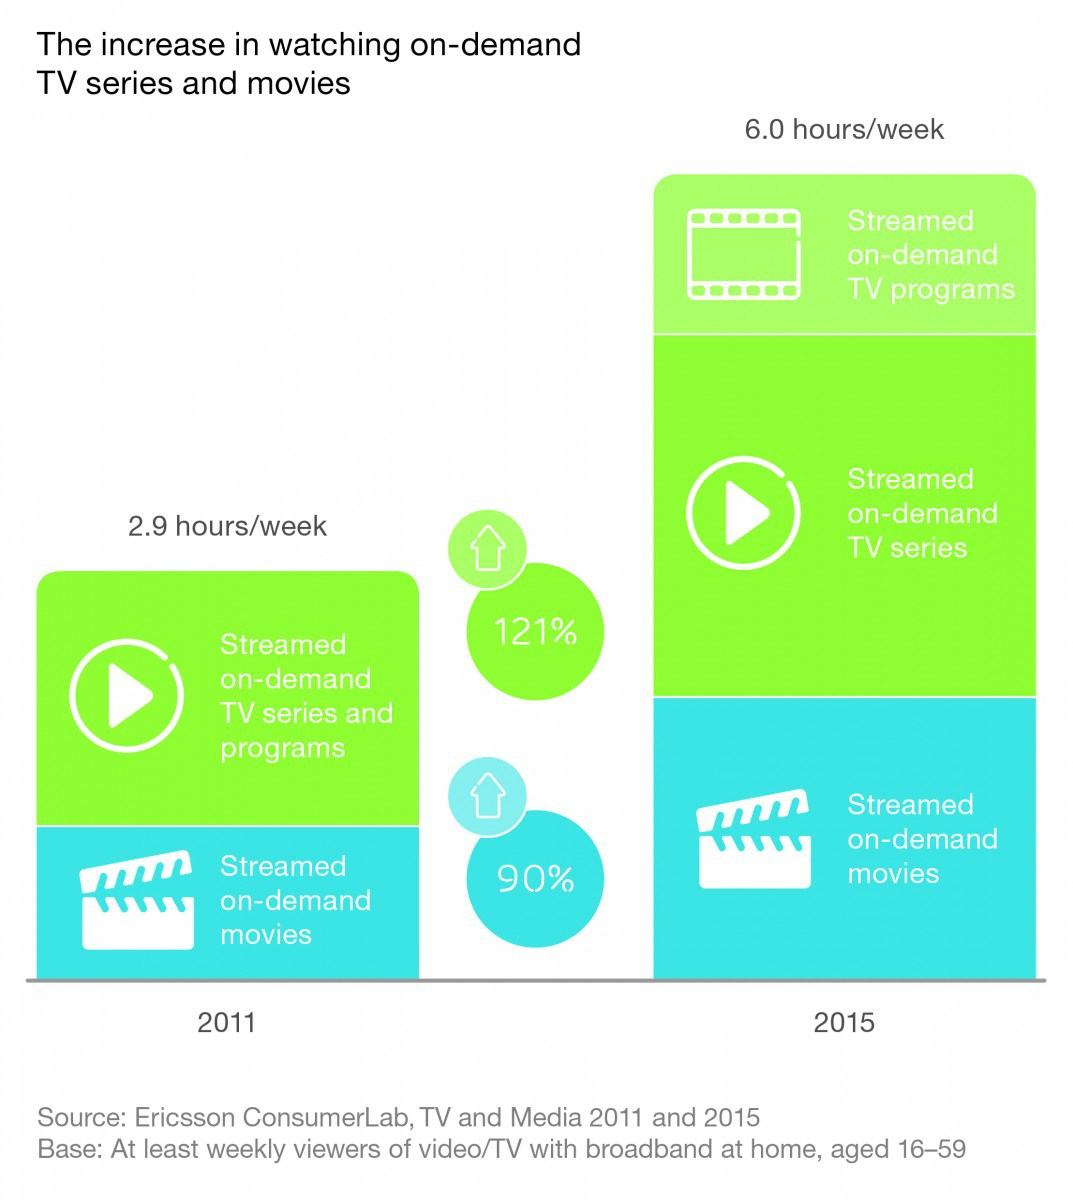 On-demand video viewing - Ericsson ConsumerLab TV & Media Report 2015